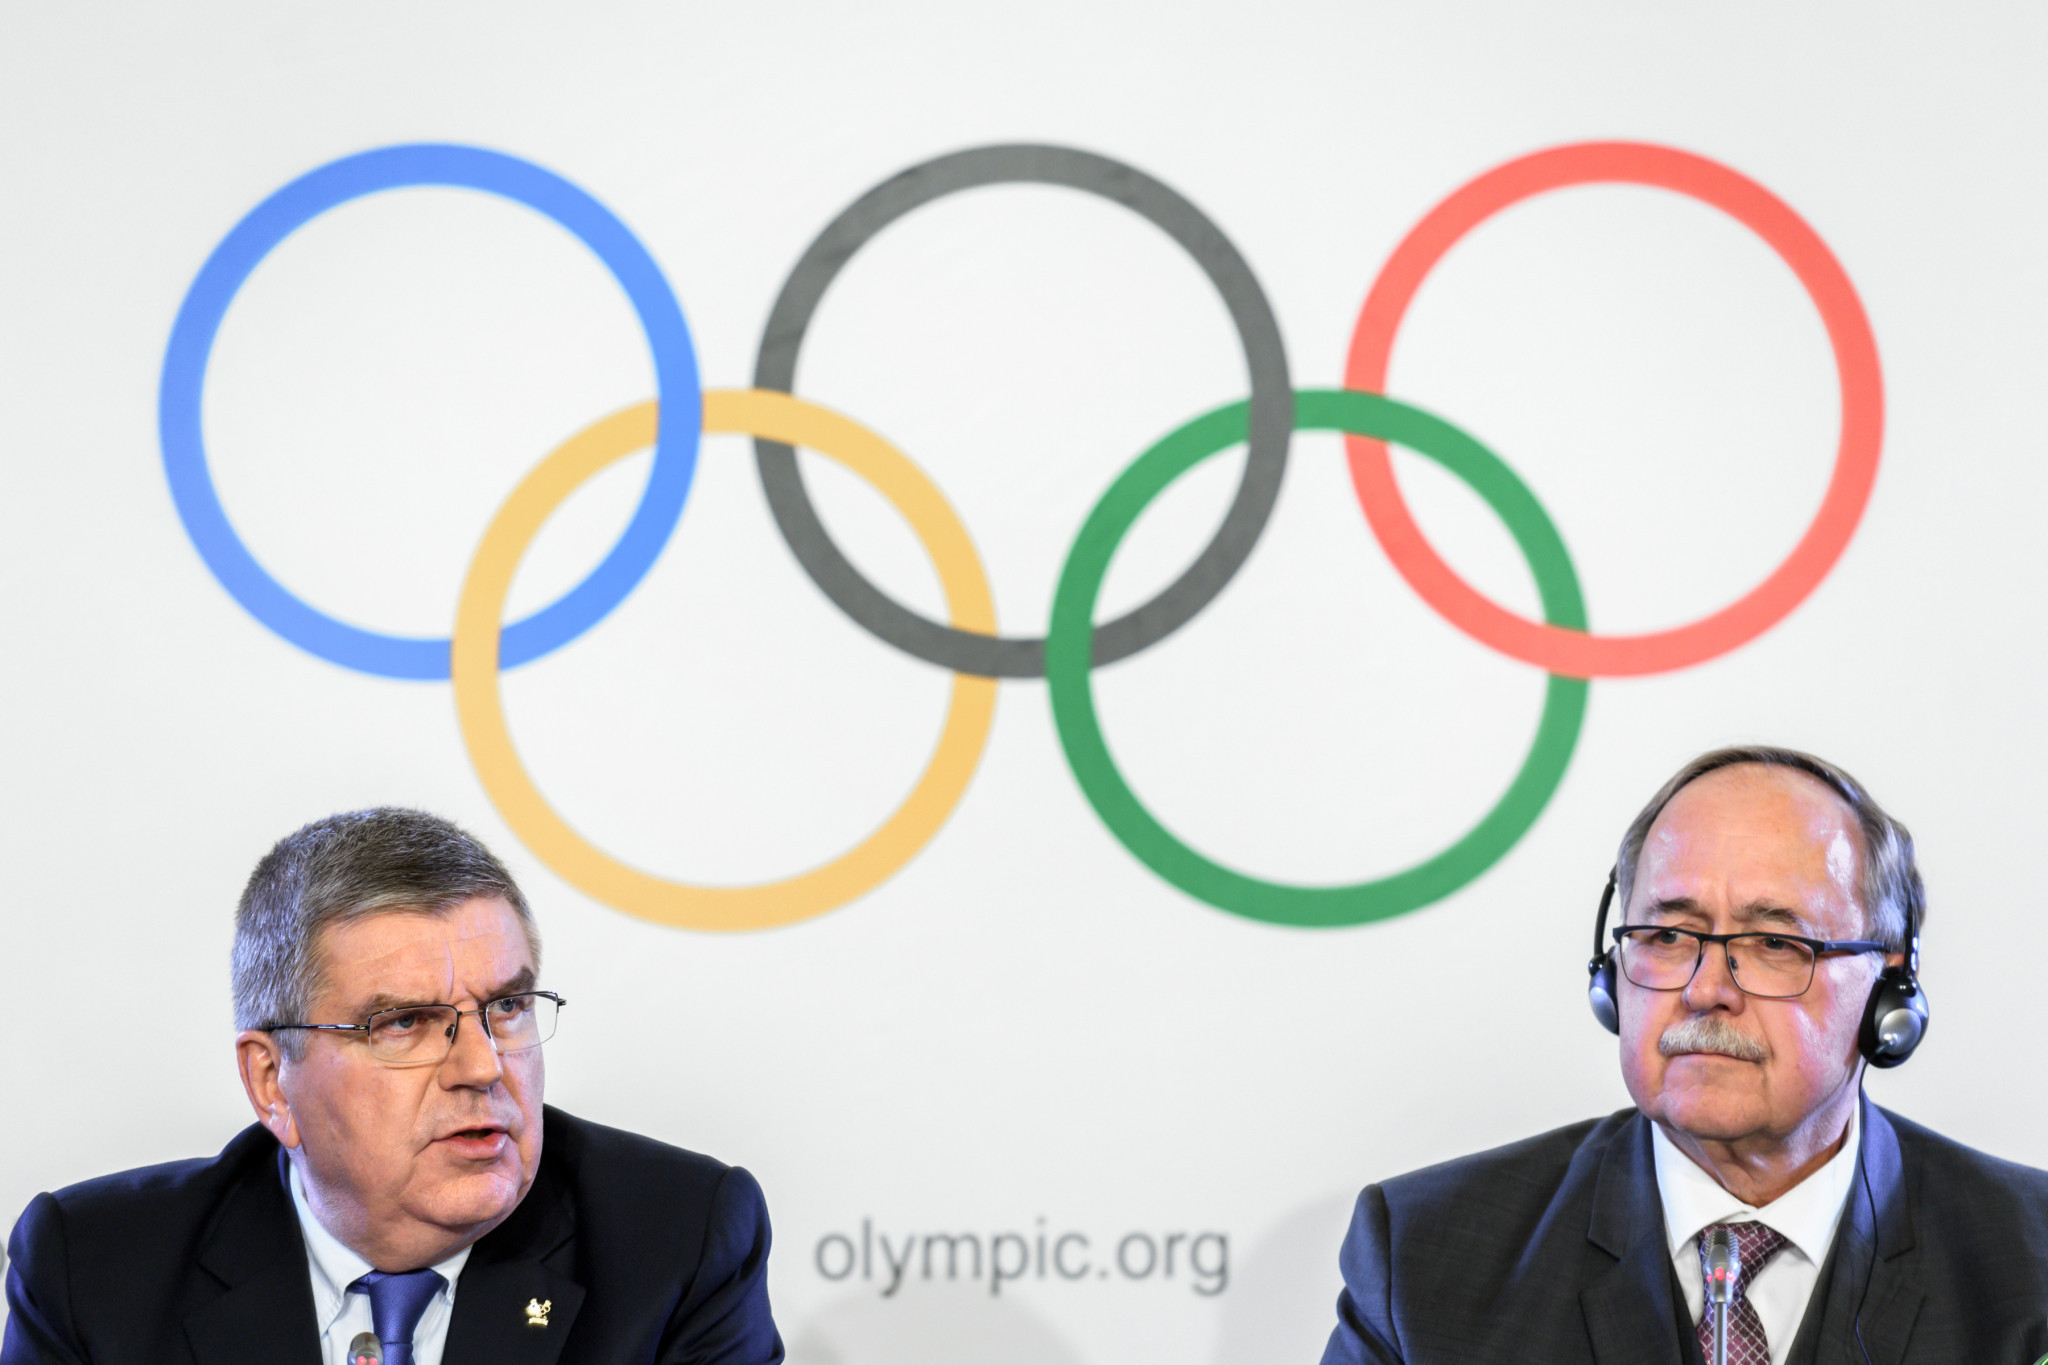 insidethegames reporting LIVE from the IOC Executive Board in Lausanne